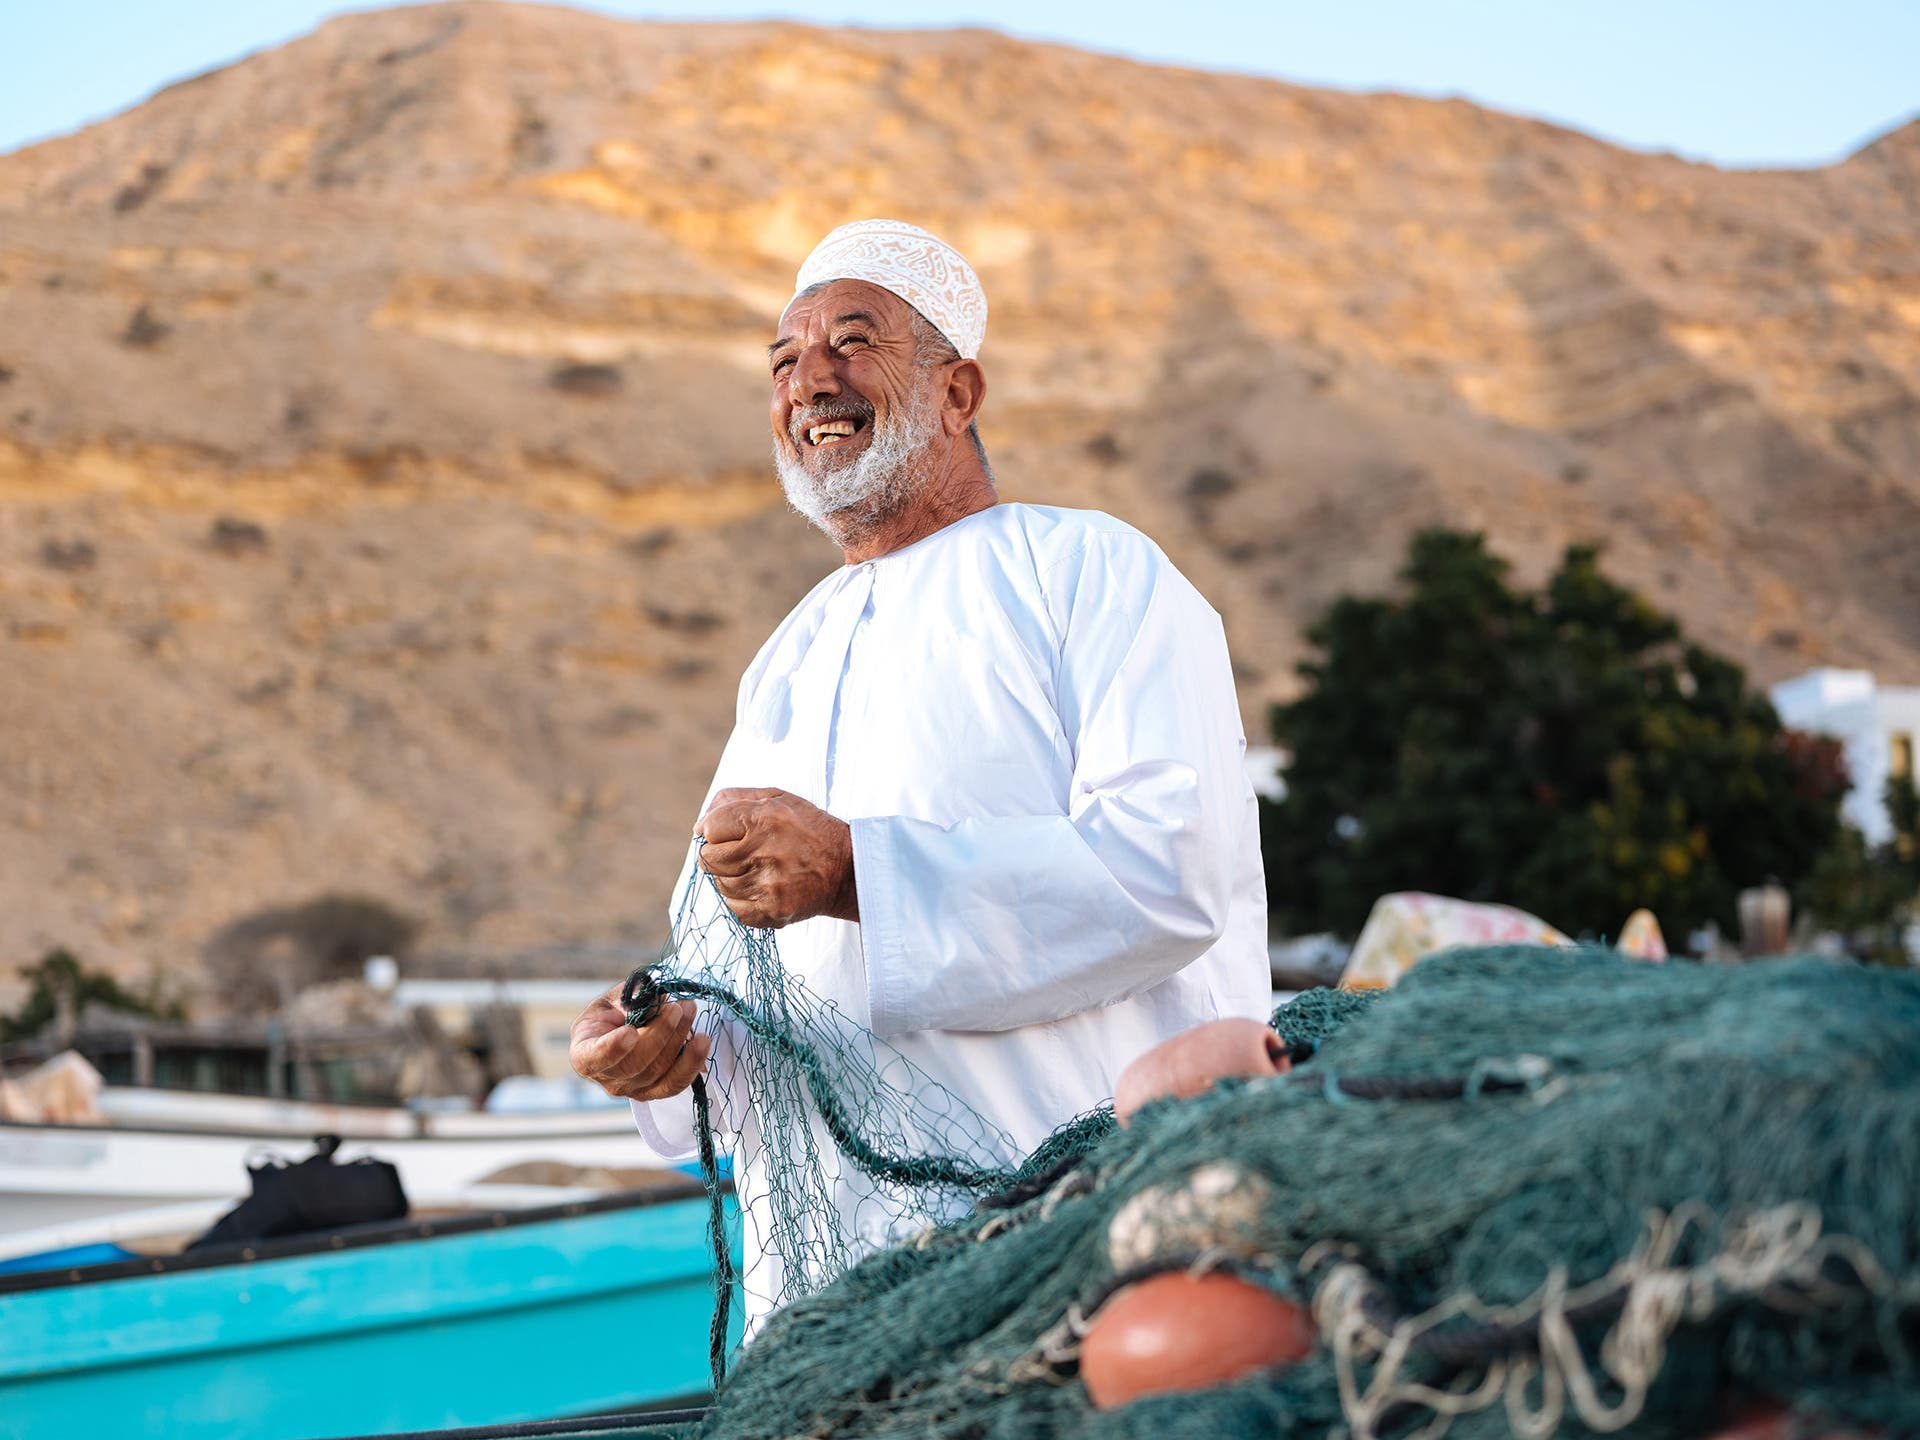 Matt Porteous Sheds Light on Sustainable Fishing Practices in Oman